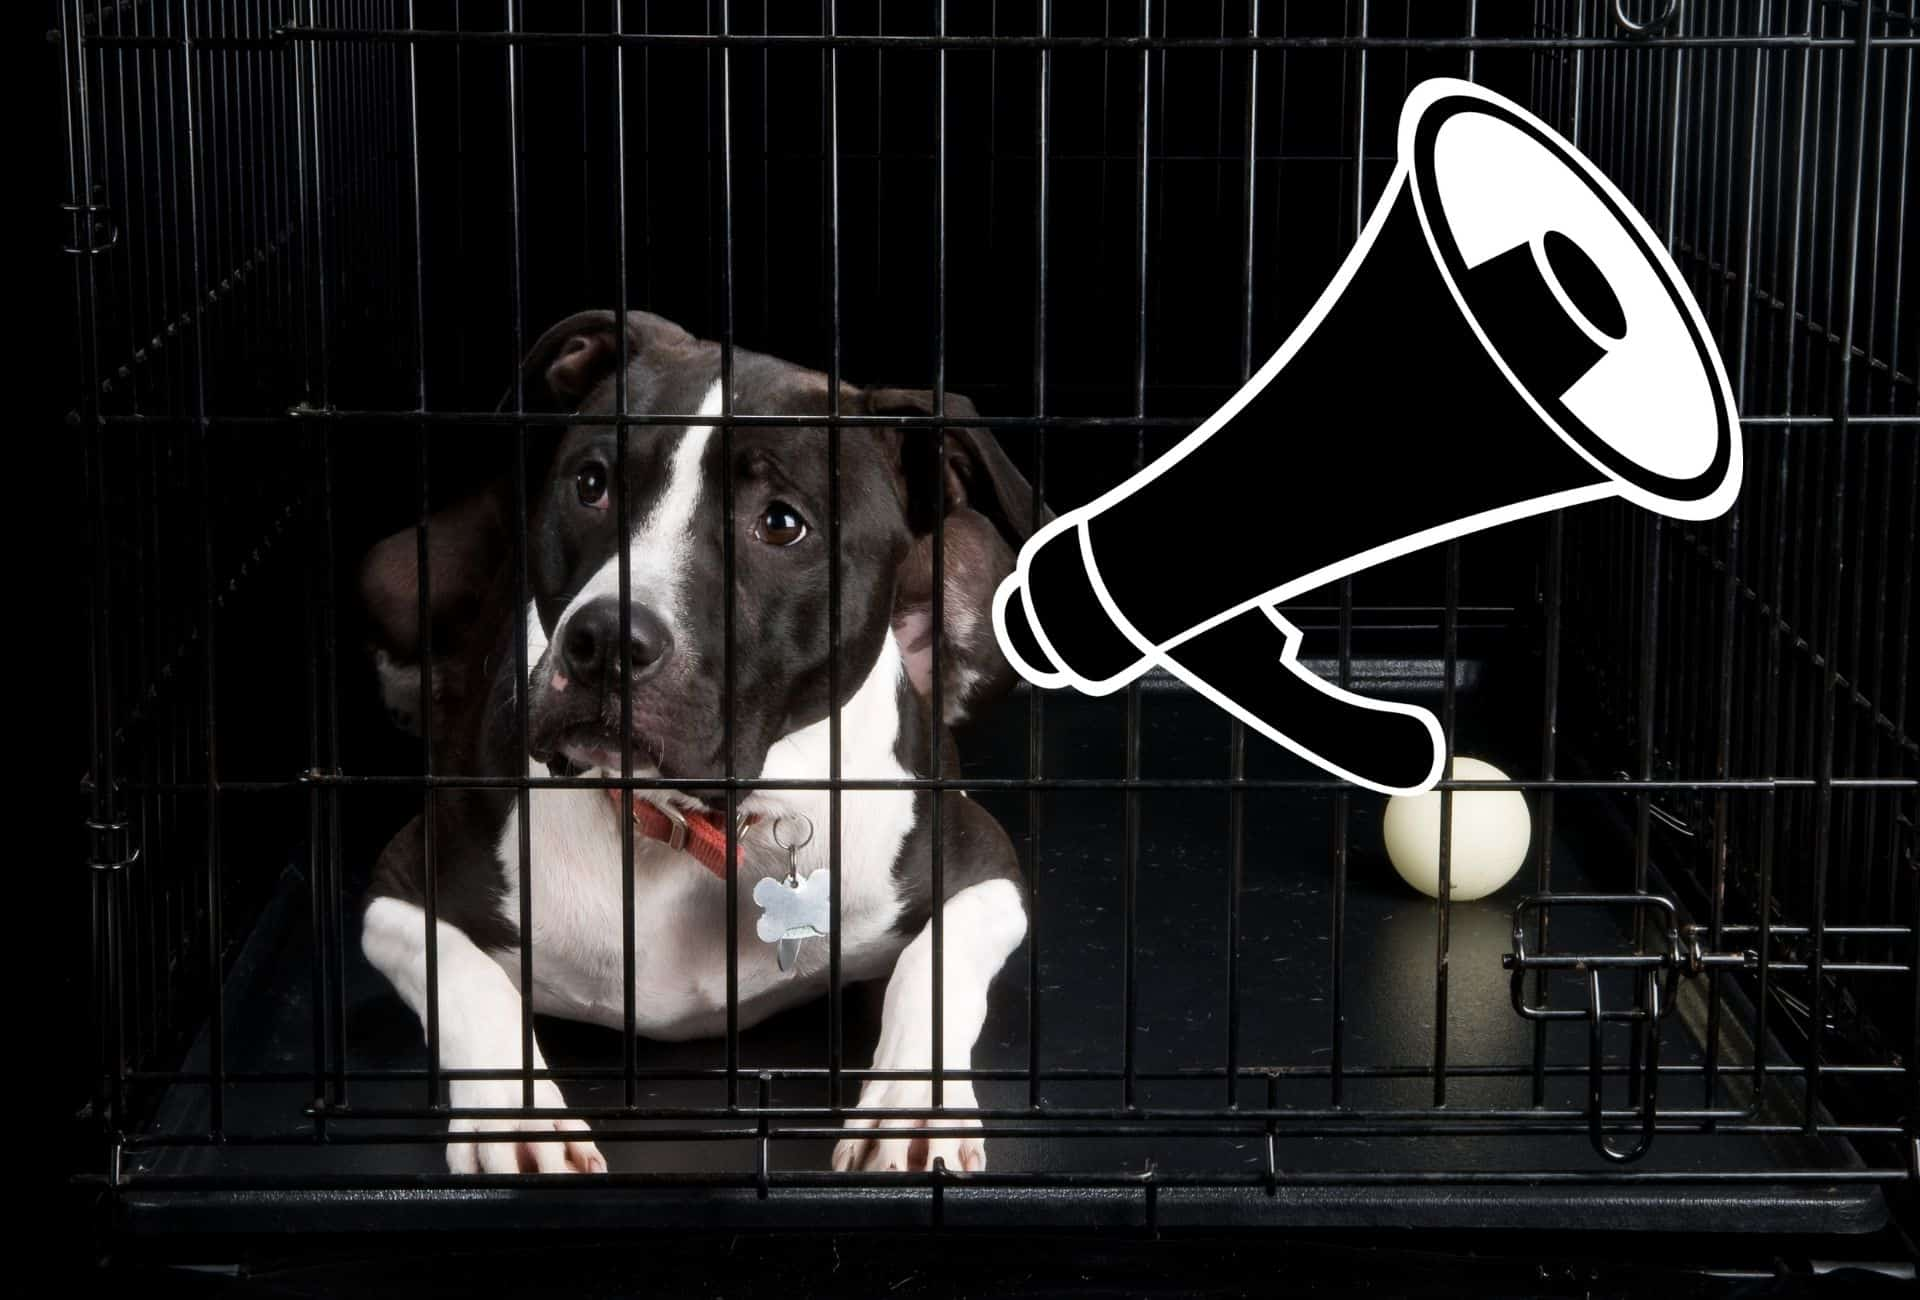 Dog inside of crate with a megaphone next to him showing that vocalization like huffing can be your dog's way of communication.